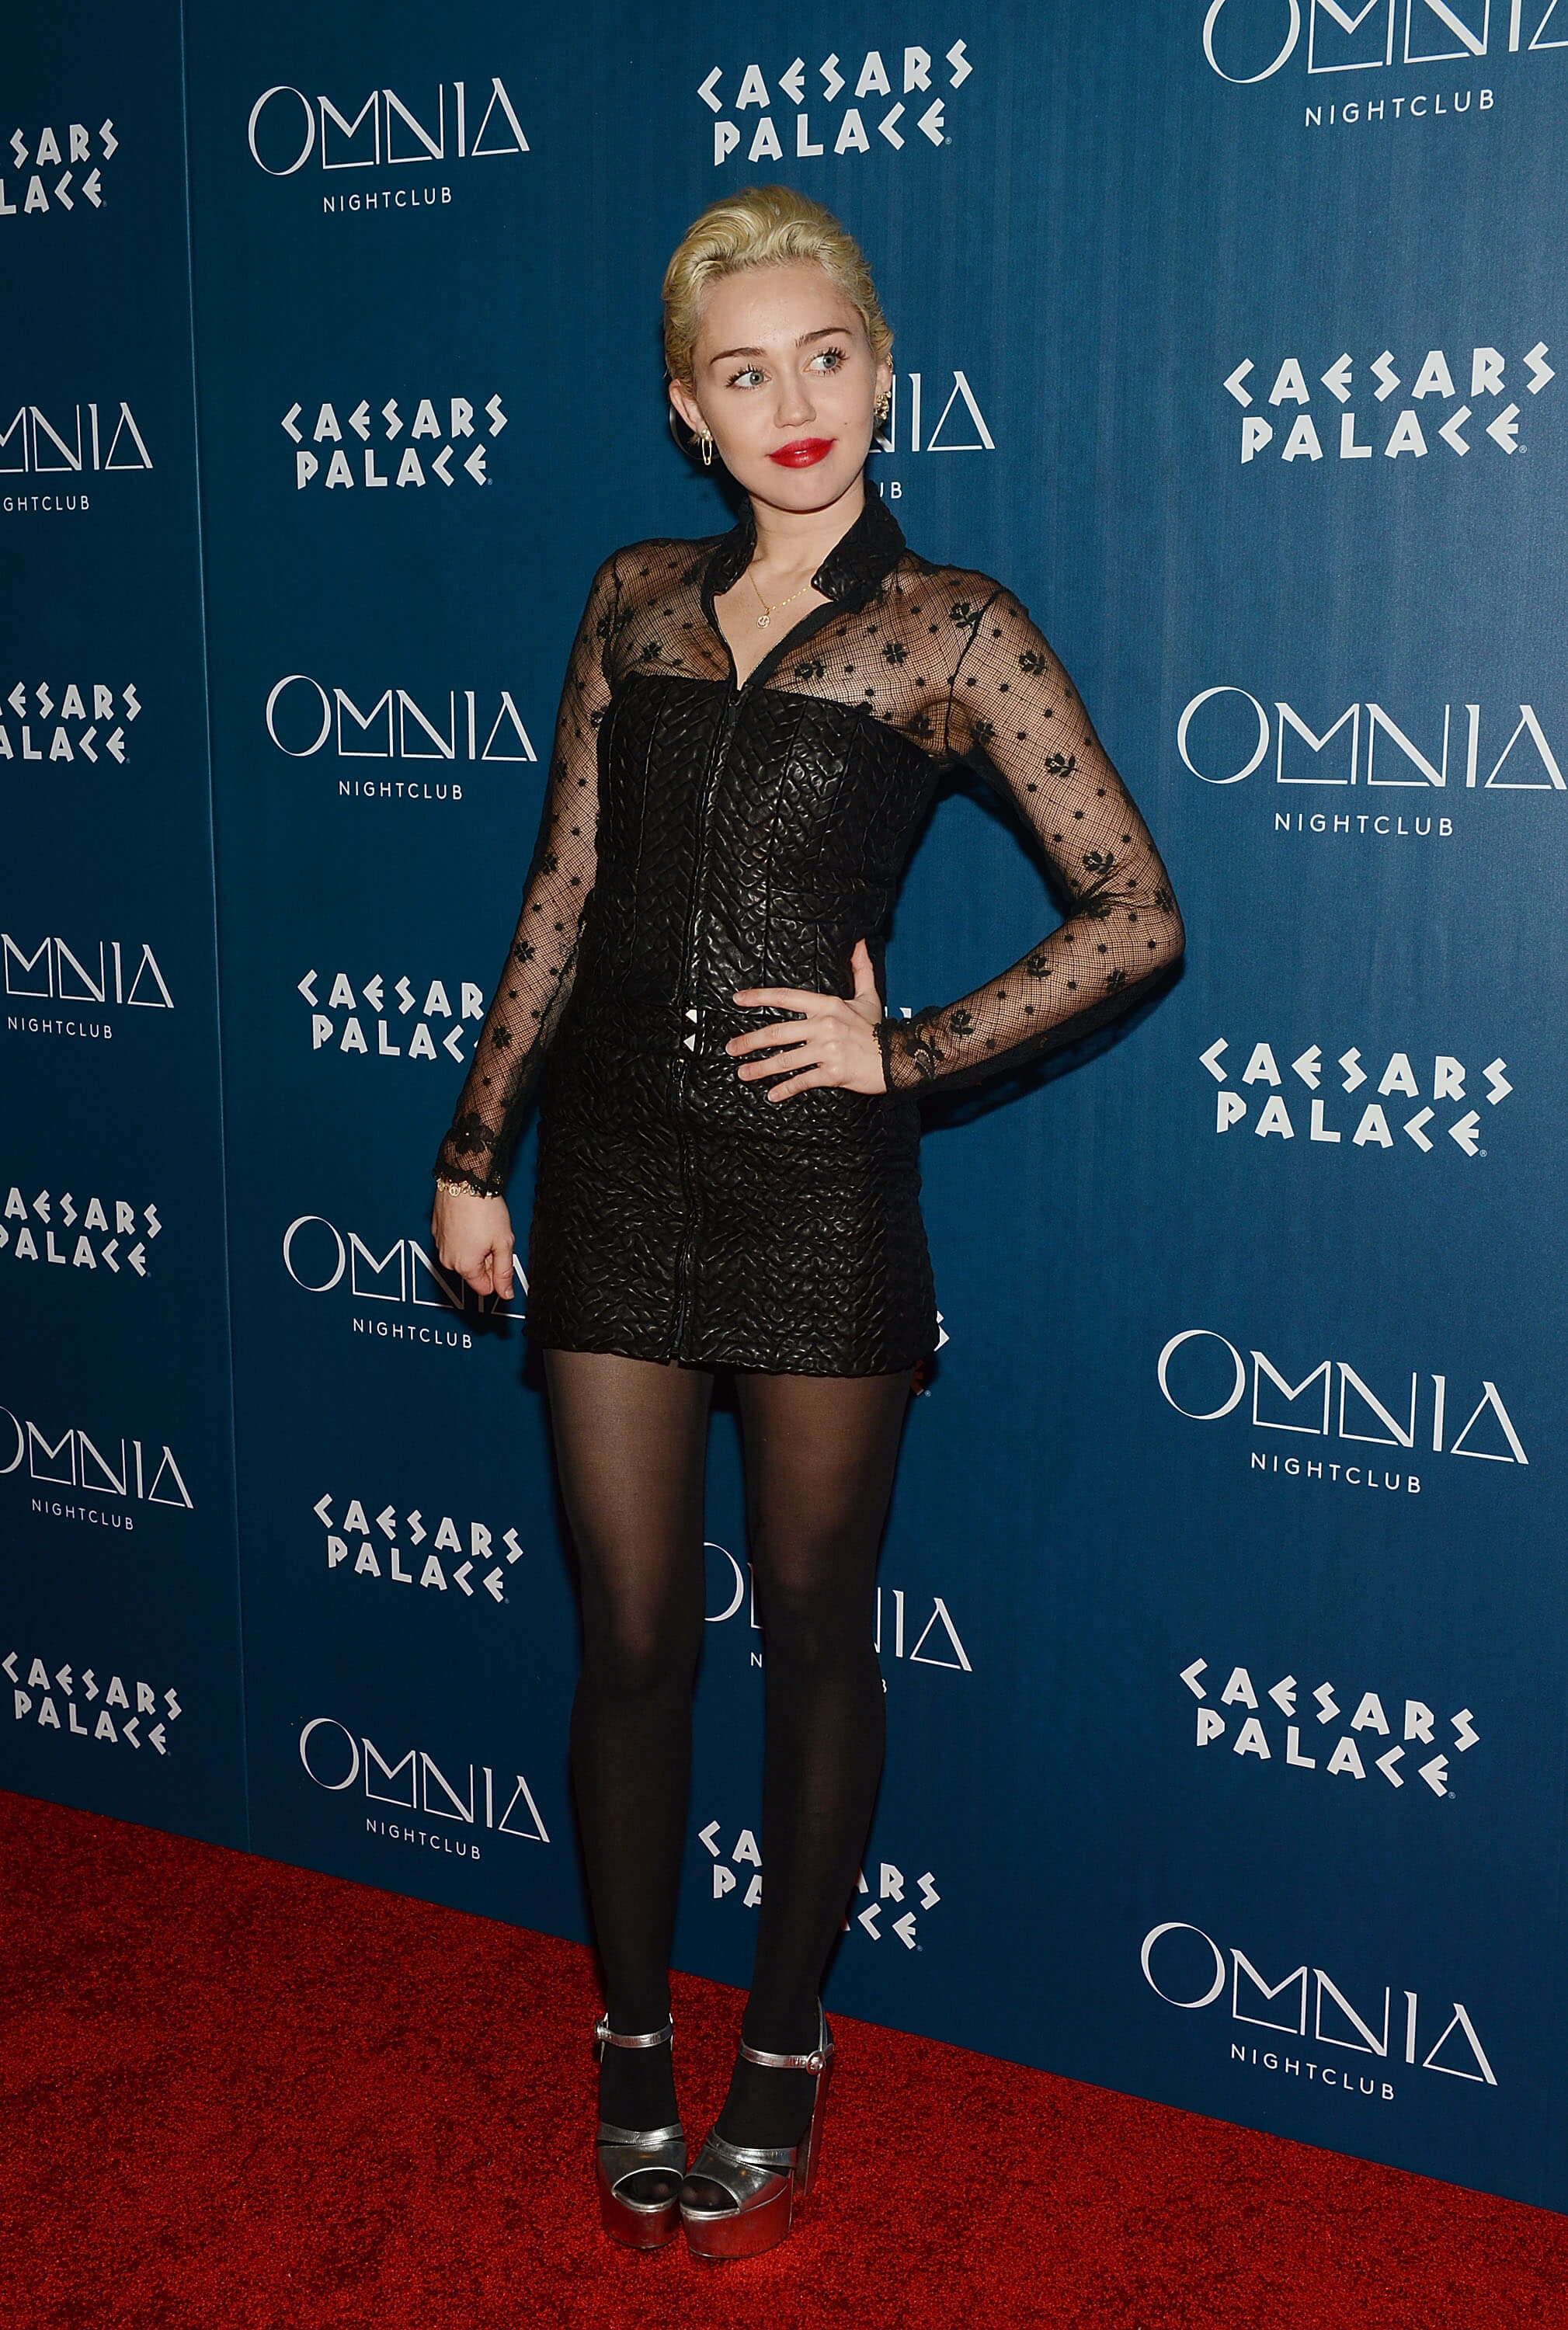 LAS VEGAS, NV - MARCH 21:  Miley Cyrus arrives at Heart of OMNIA in Caesars Palace on March 21, 2015 in Las Vegas, Nevada.  (Photo by Denise Truscello/WireImage)